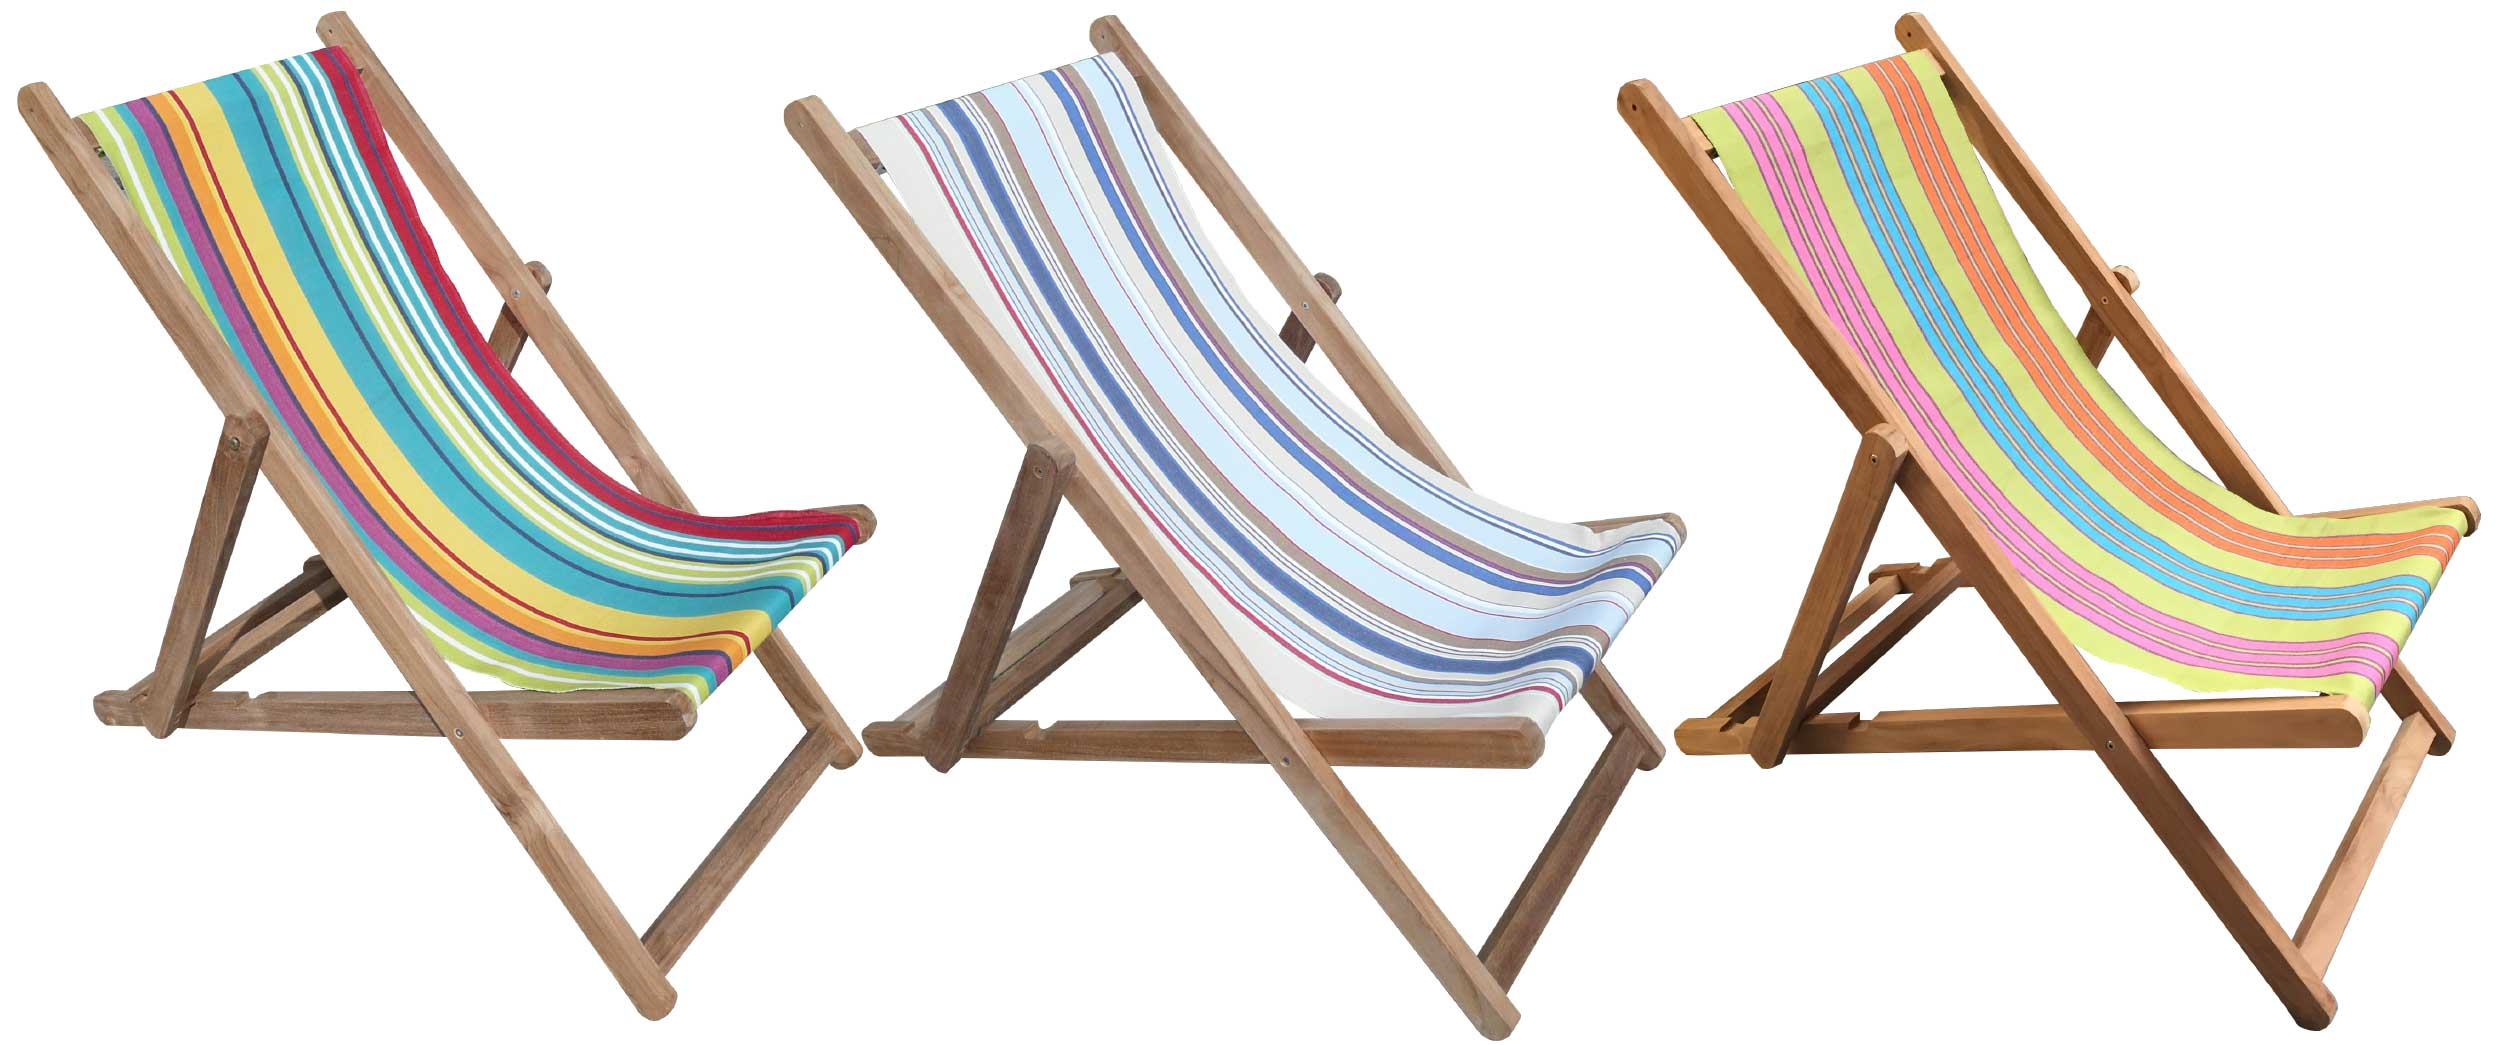 Deckchair with Deckchair Cover